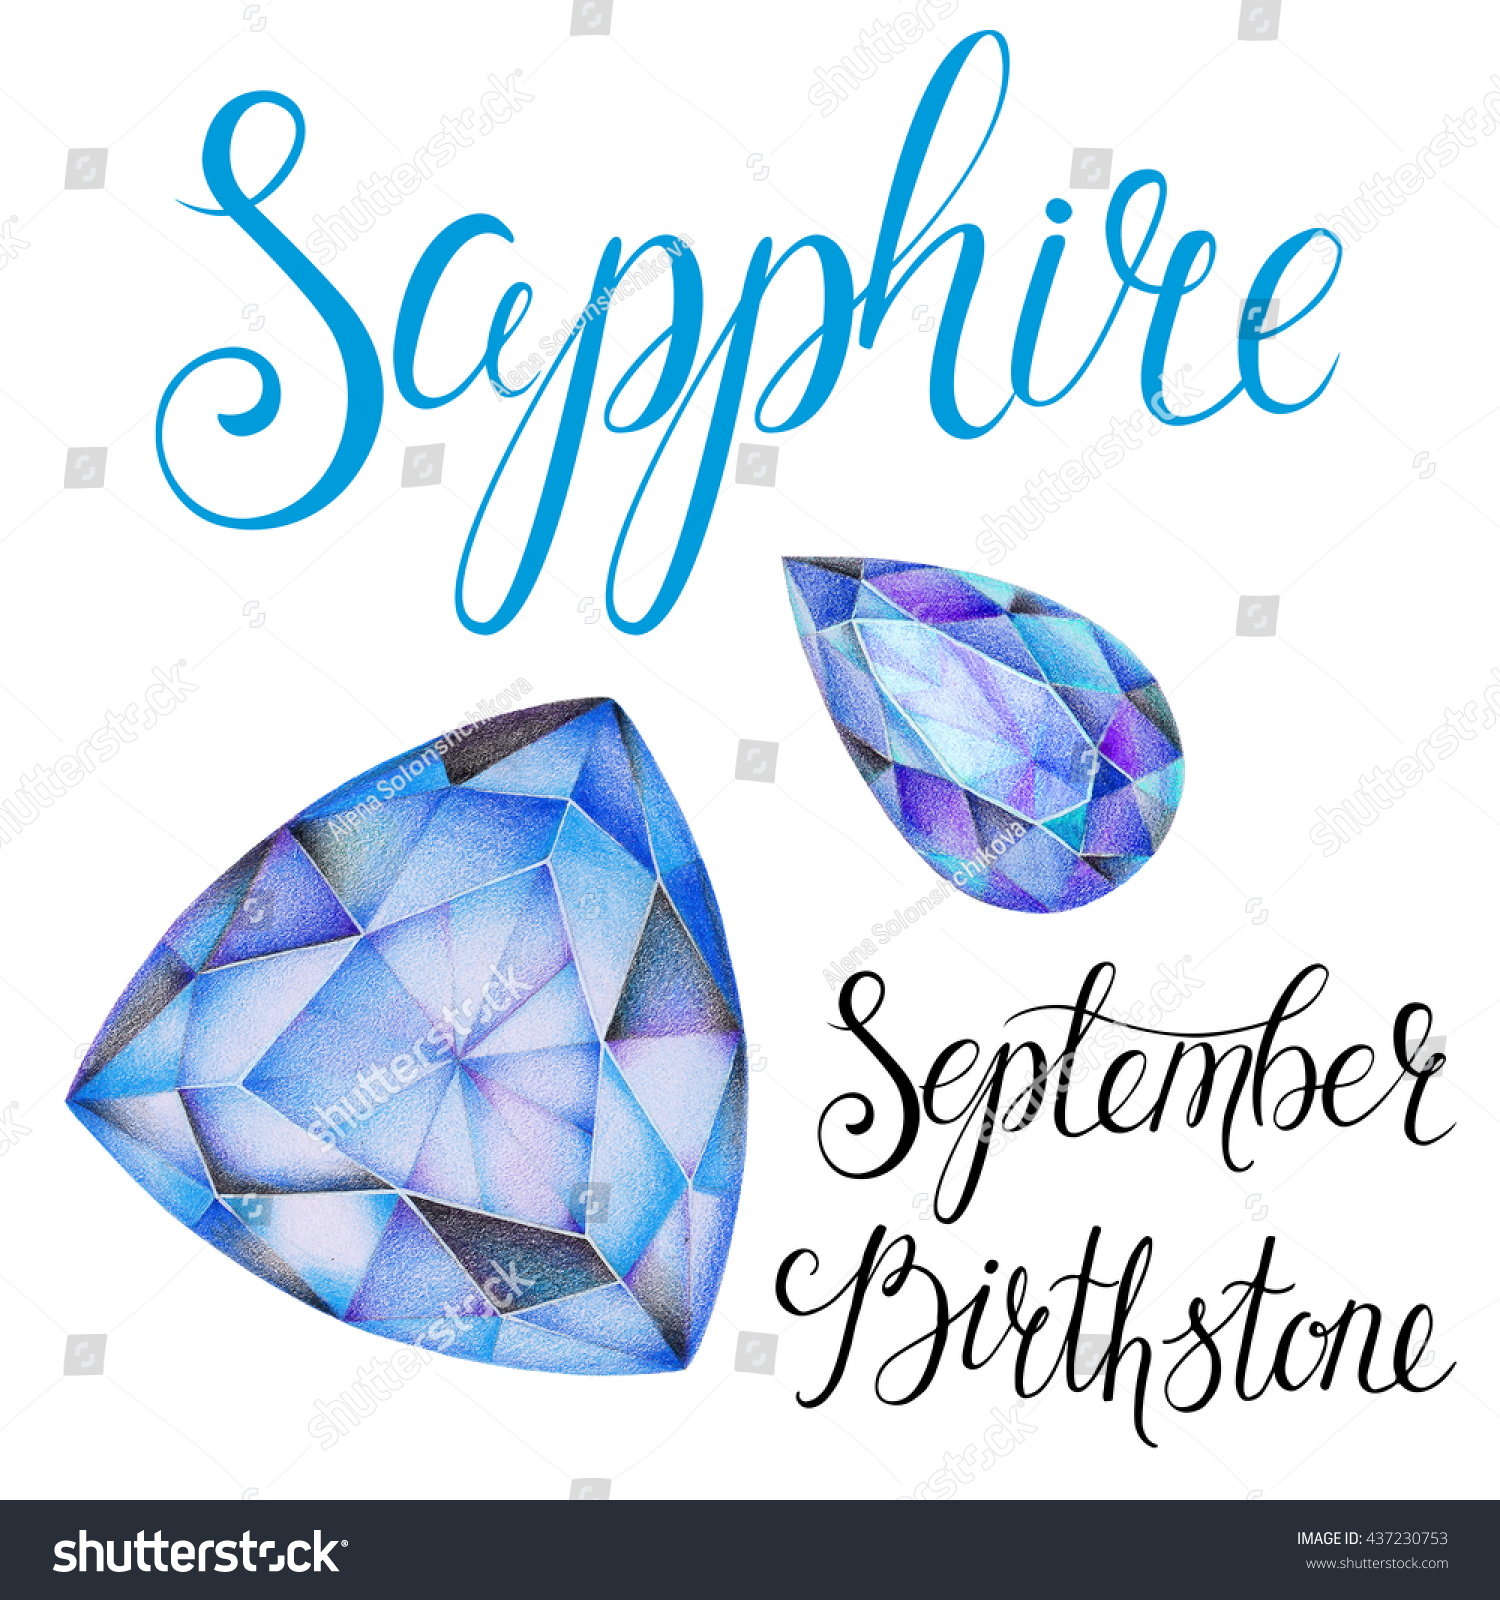 s sapphire tahara birthstone mysterious earrings september septembers jewelry